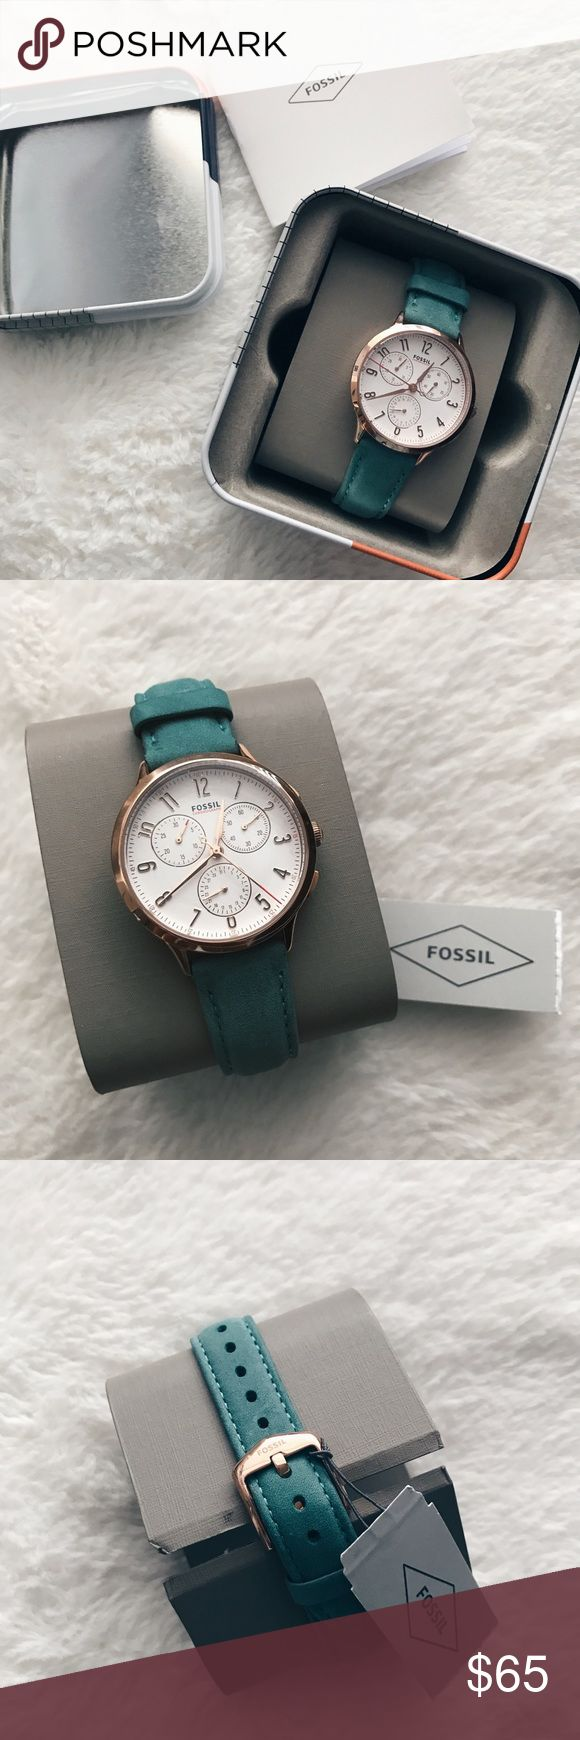 Women's Fossil Watch I'm selling this beautiful fossil watch. It has a beautiful turquoise band w/ rose gold detailing. Fossil Jewelry